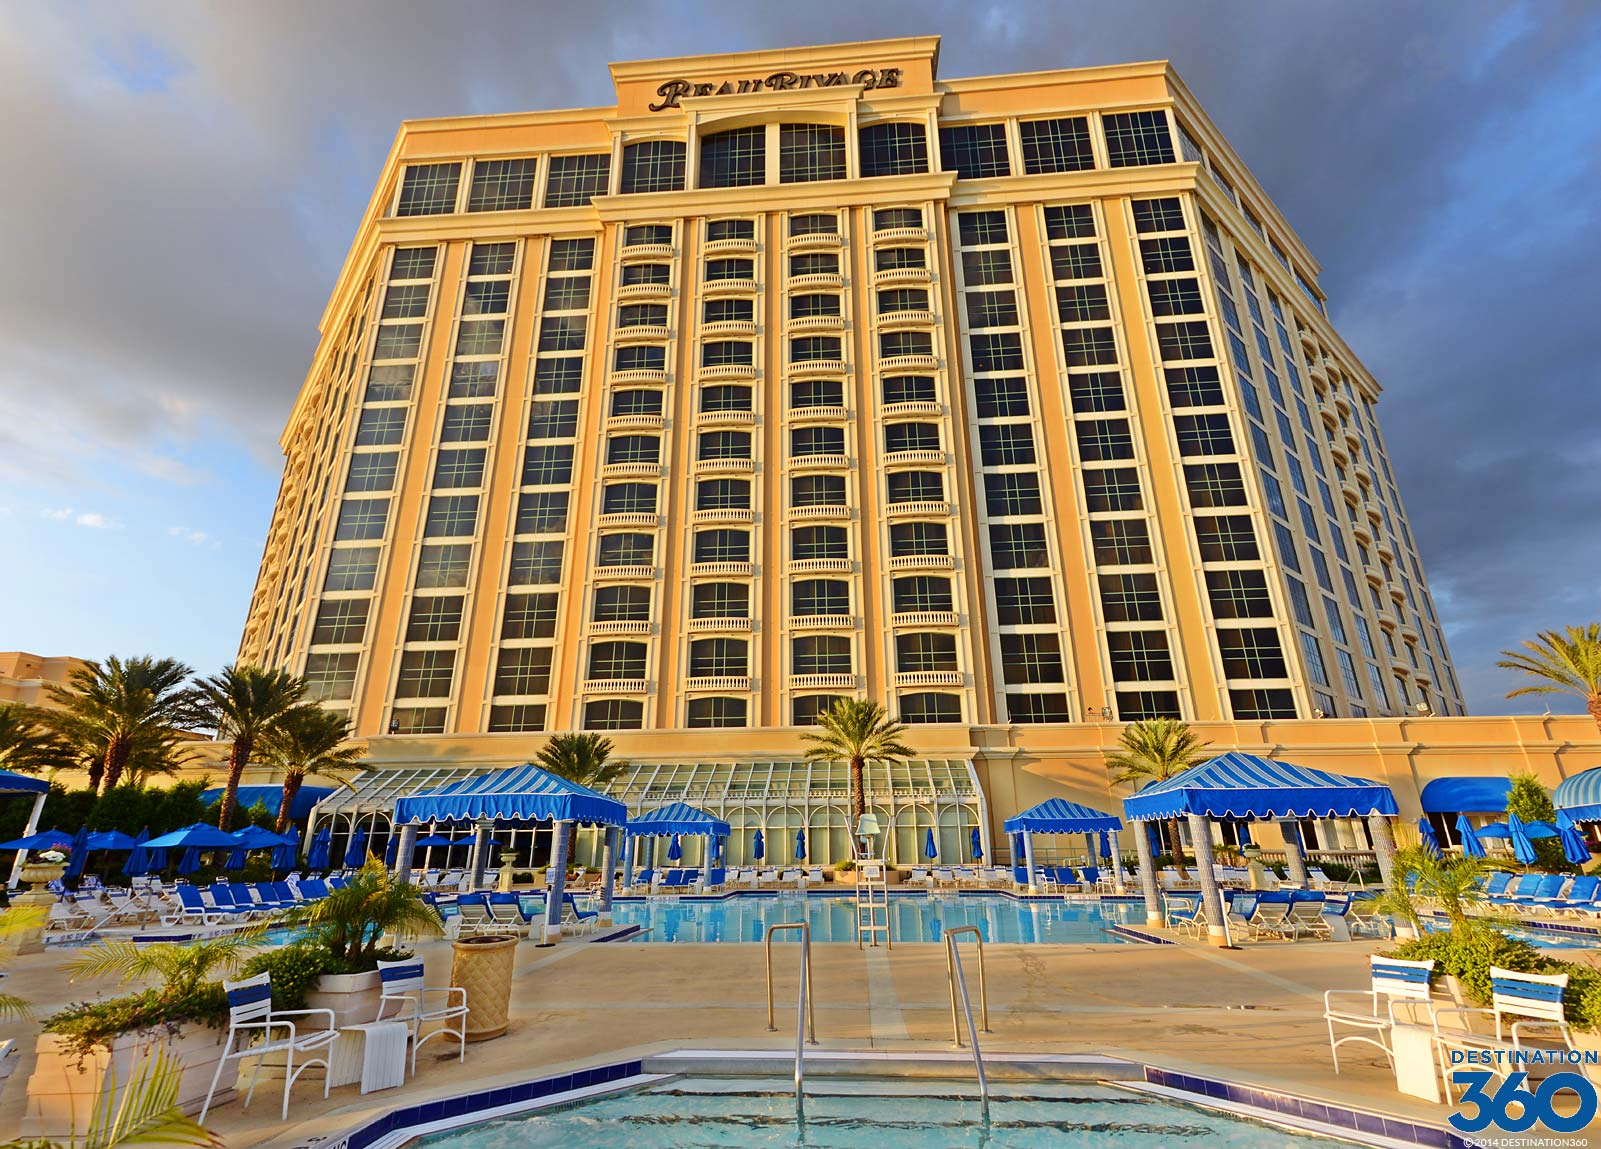 Mississippi Resorts Biloxi Mississippi Beach Resorts